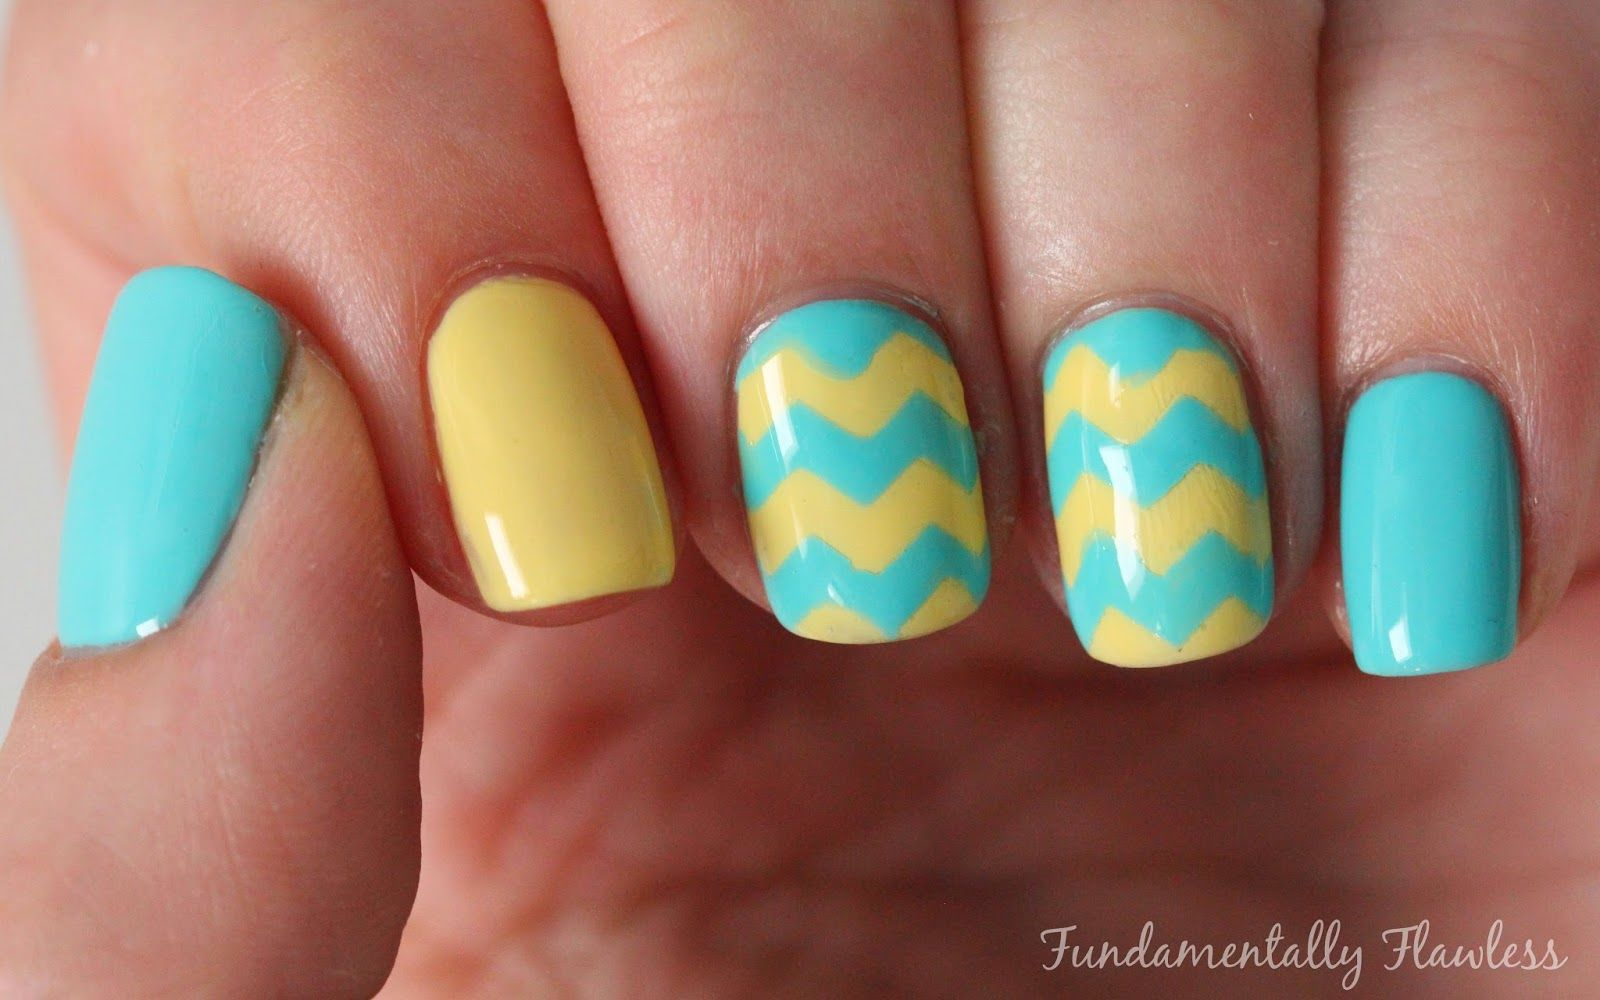 Yellow and turquoise chevron nails pictures photos and images for yellow and turquoise chevron nails solutioingenieria Gallery